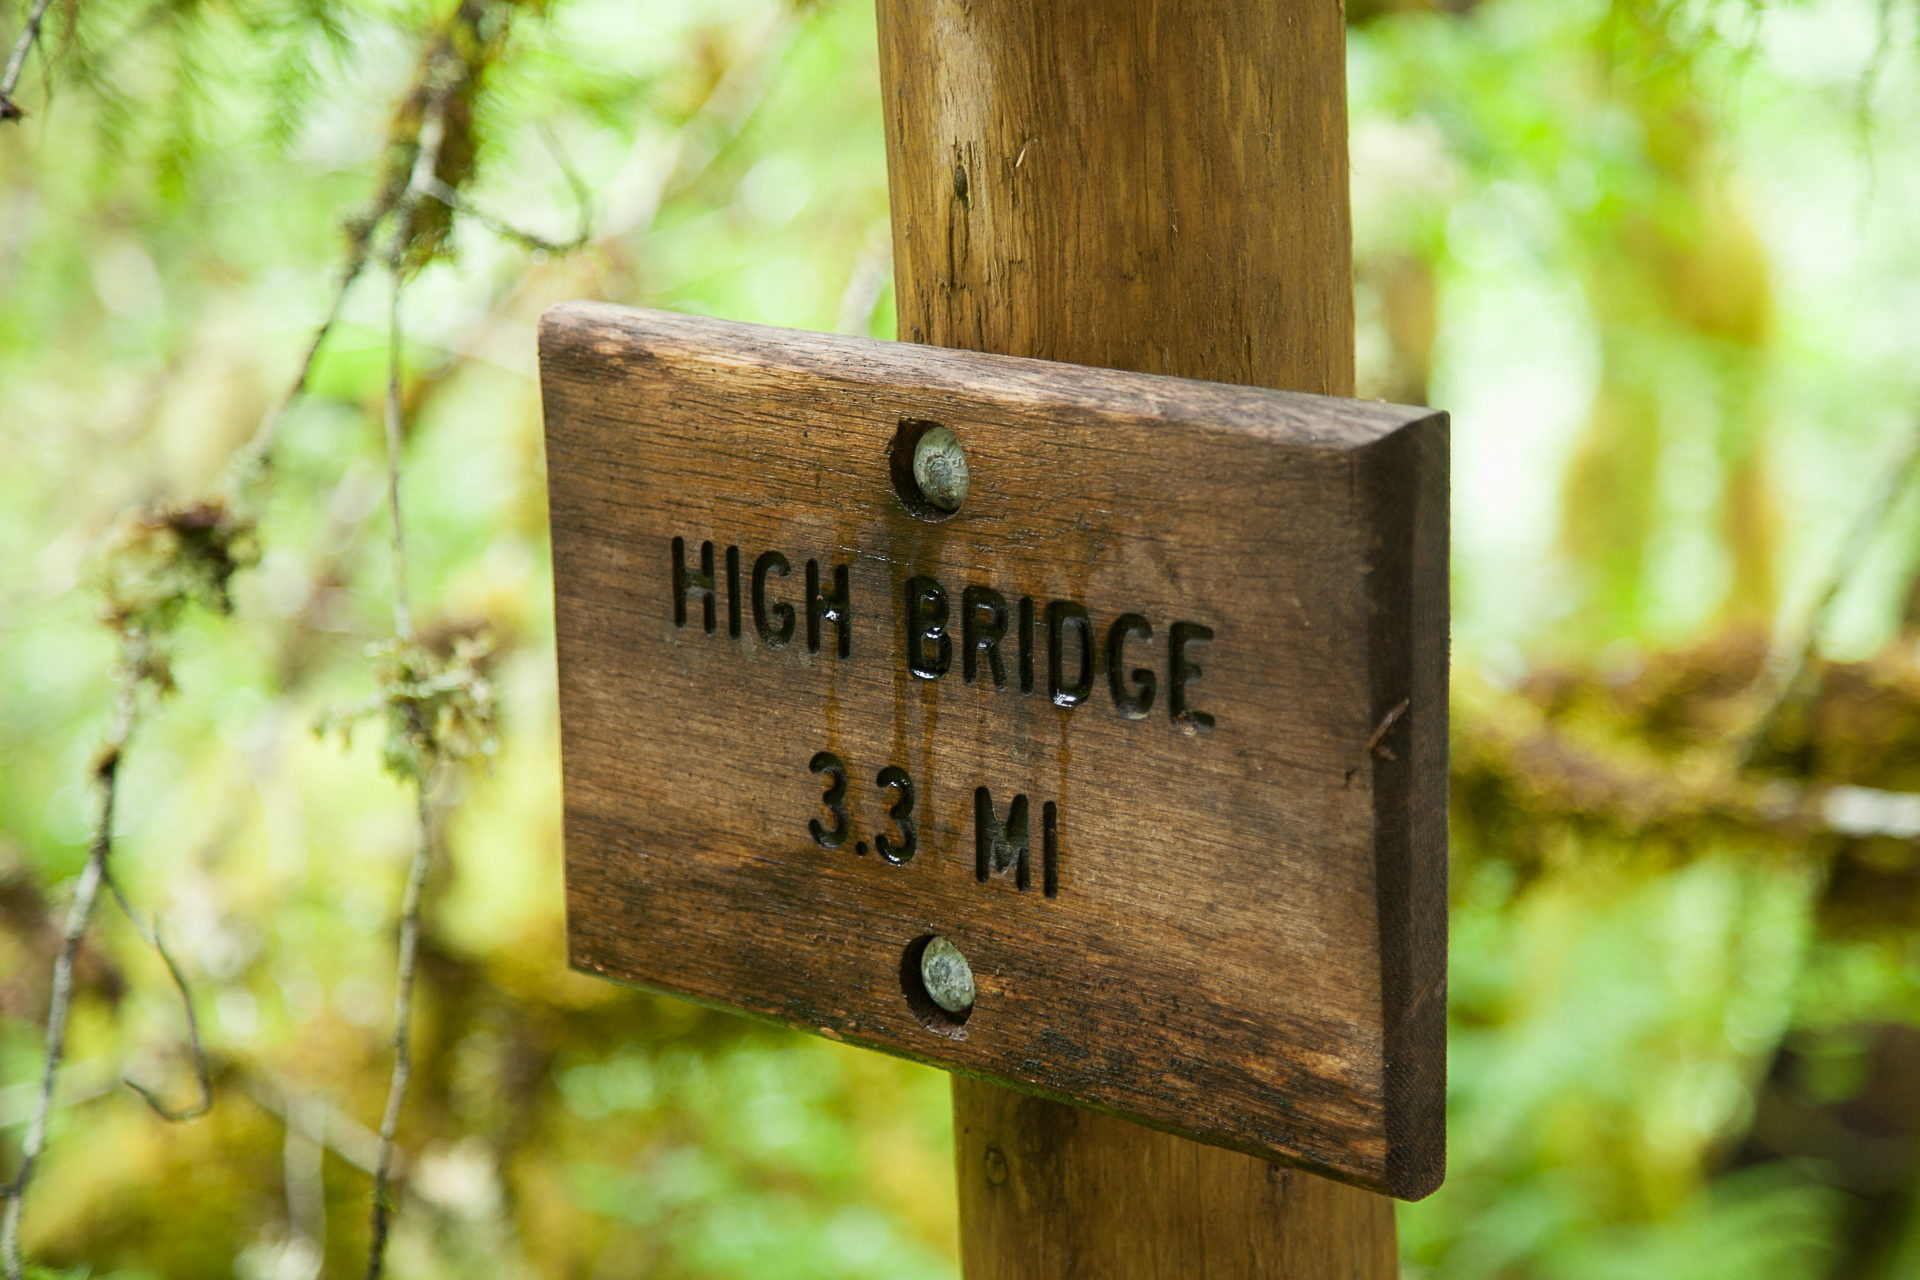 The sign for HIgh Bridge